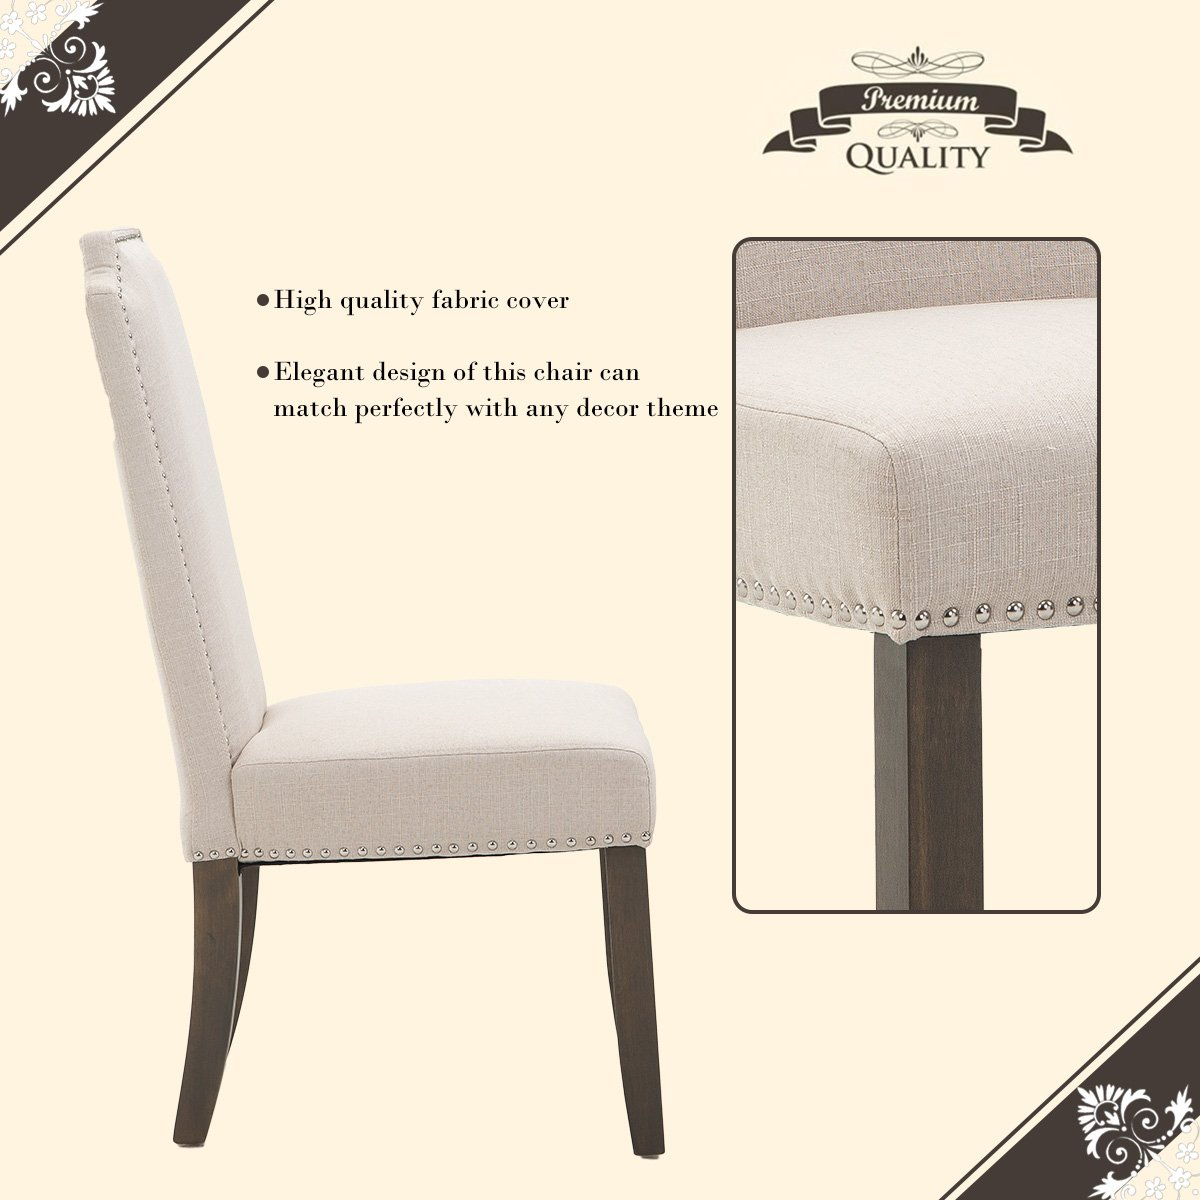 Merax Set of 2 Stylish Upholstered Fabric Dining Chairs with Nailhead Detail and Solid Wood Legs (Beige)